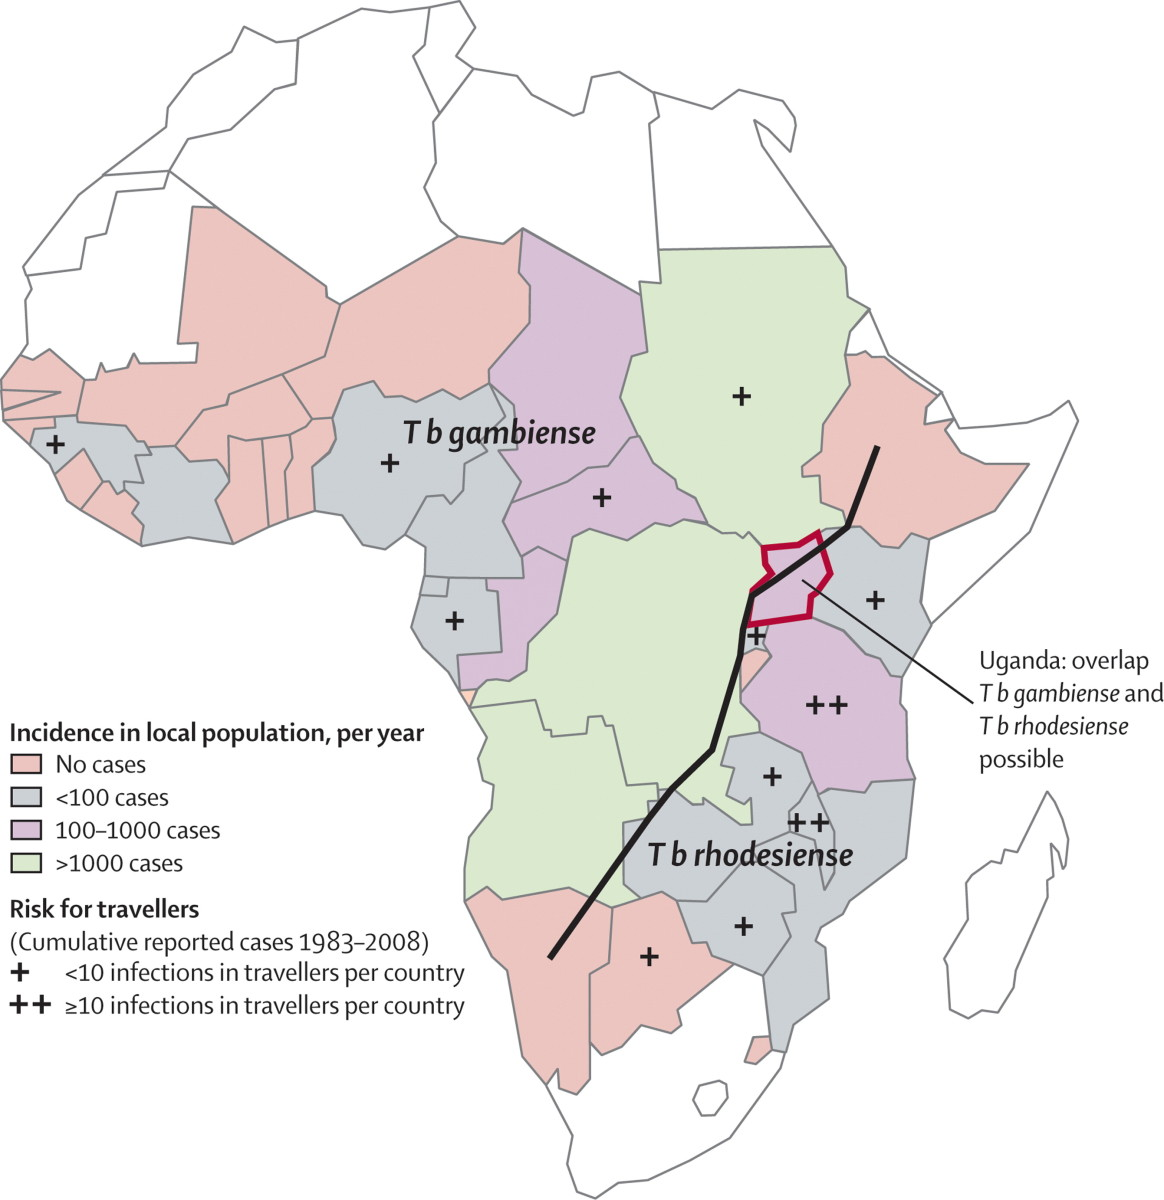 Spatial distribution of East African (T. b. rhodesiense) and West African (T. b. gambiense) sleeping sickness